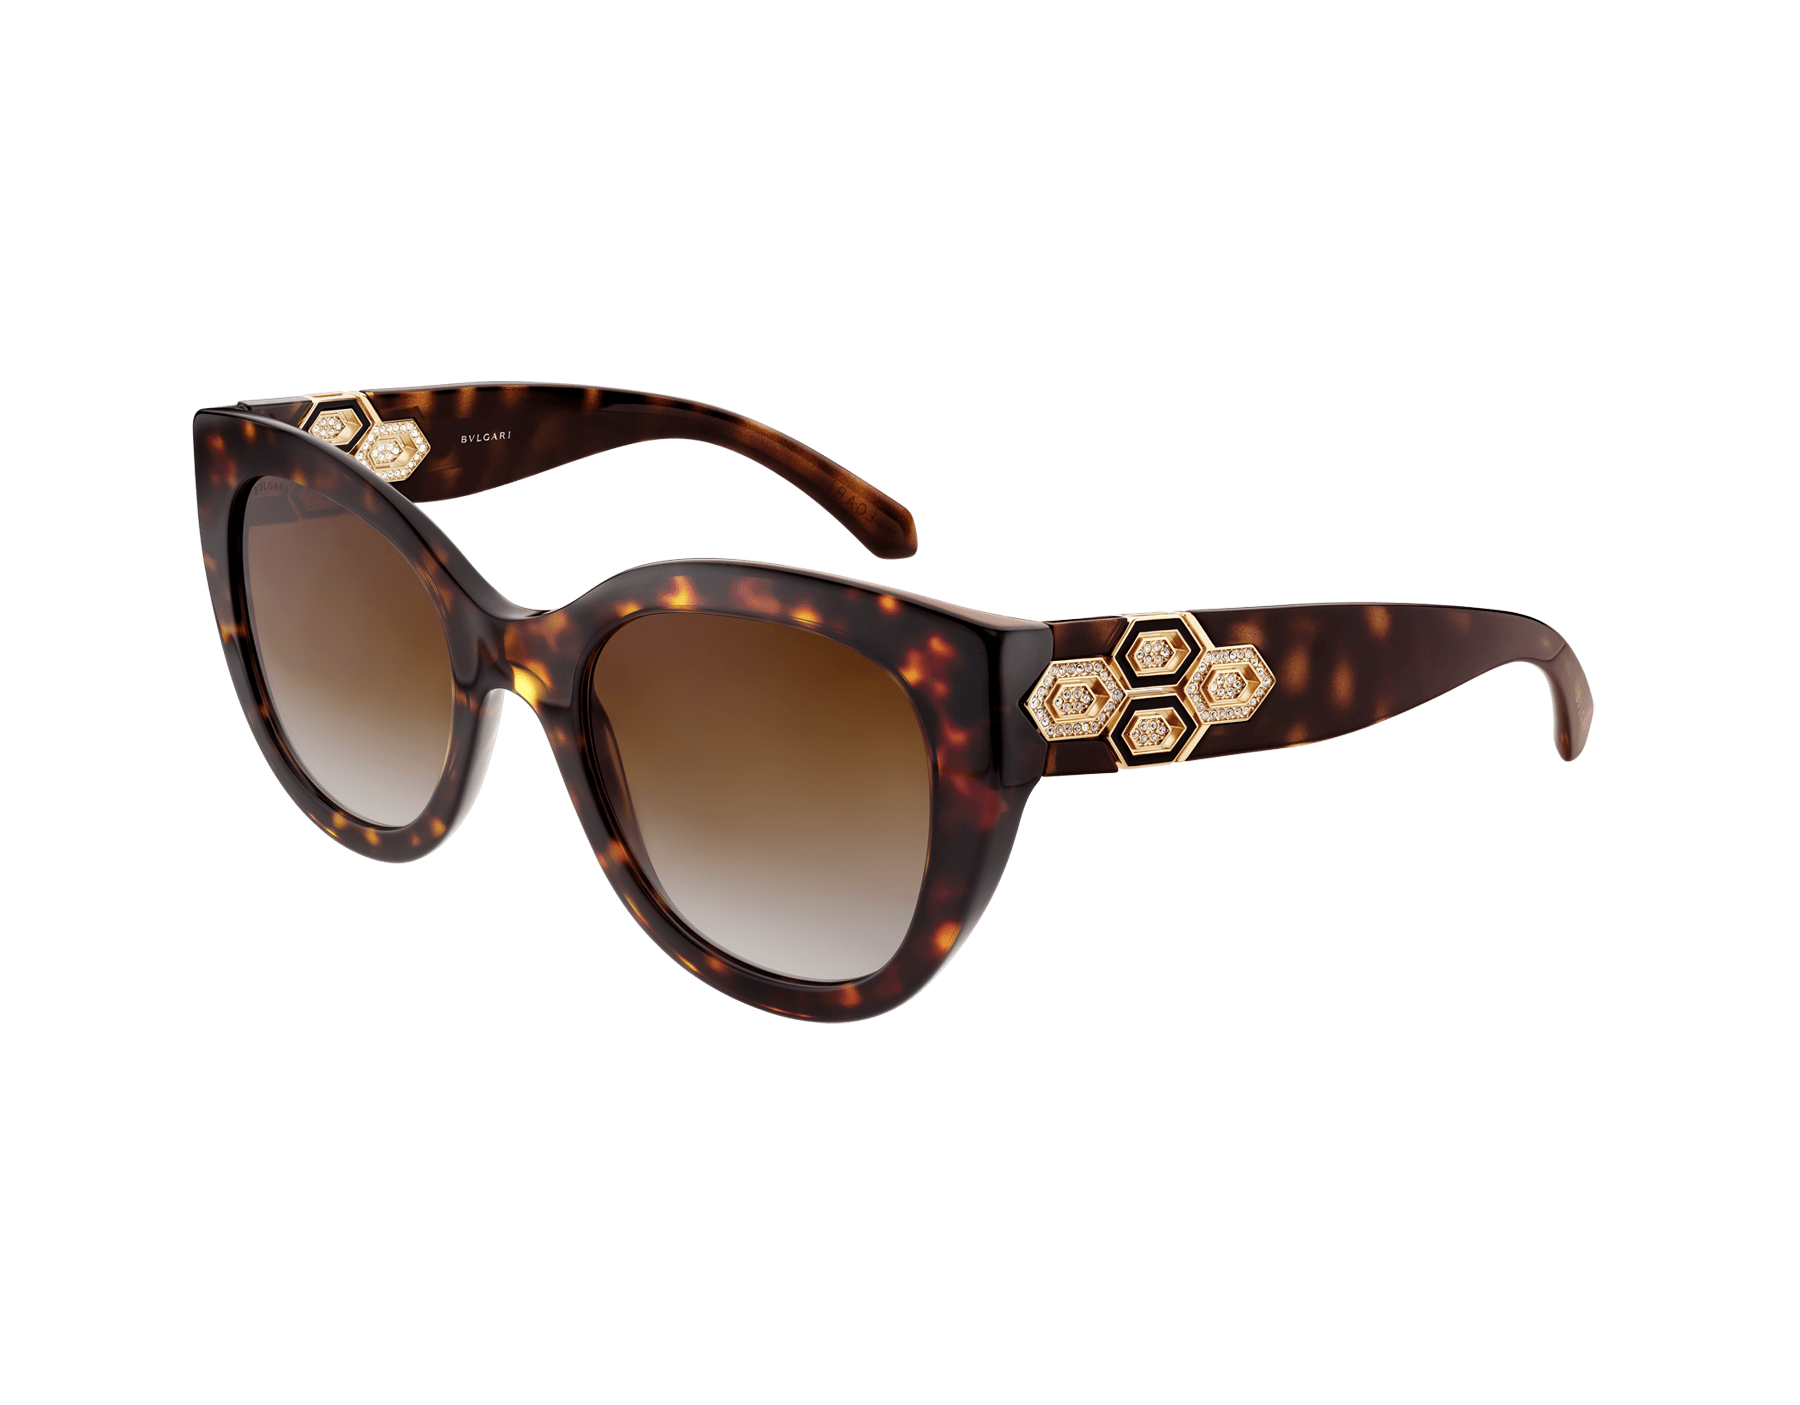 Bvlgari Serpenti squared bold acetate sunglasses with Serpenti metal décor and crystals. 903742 image 1